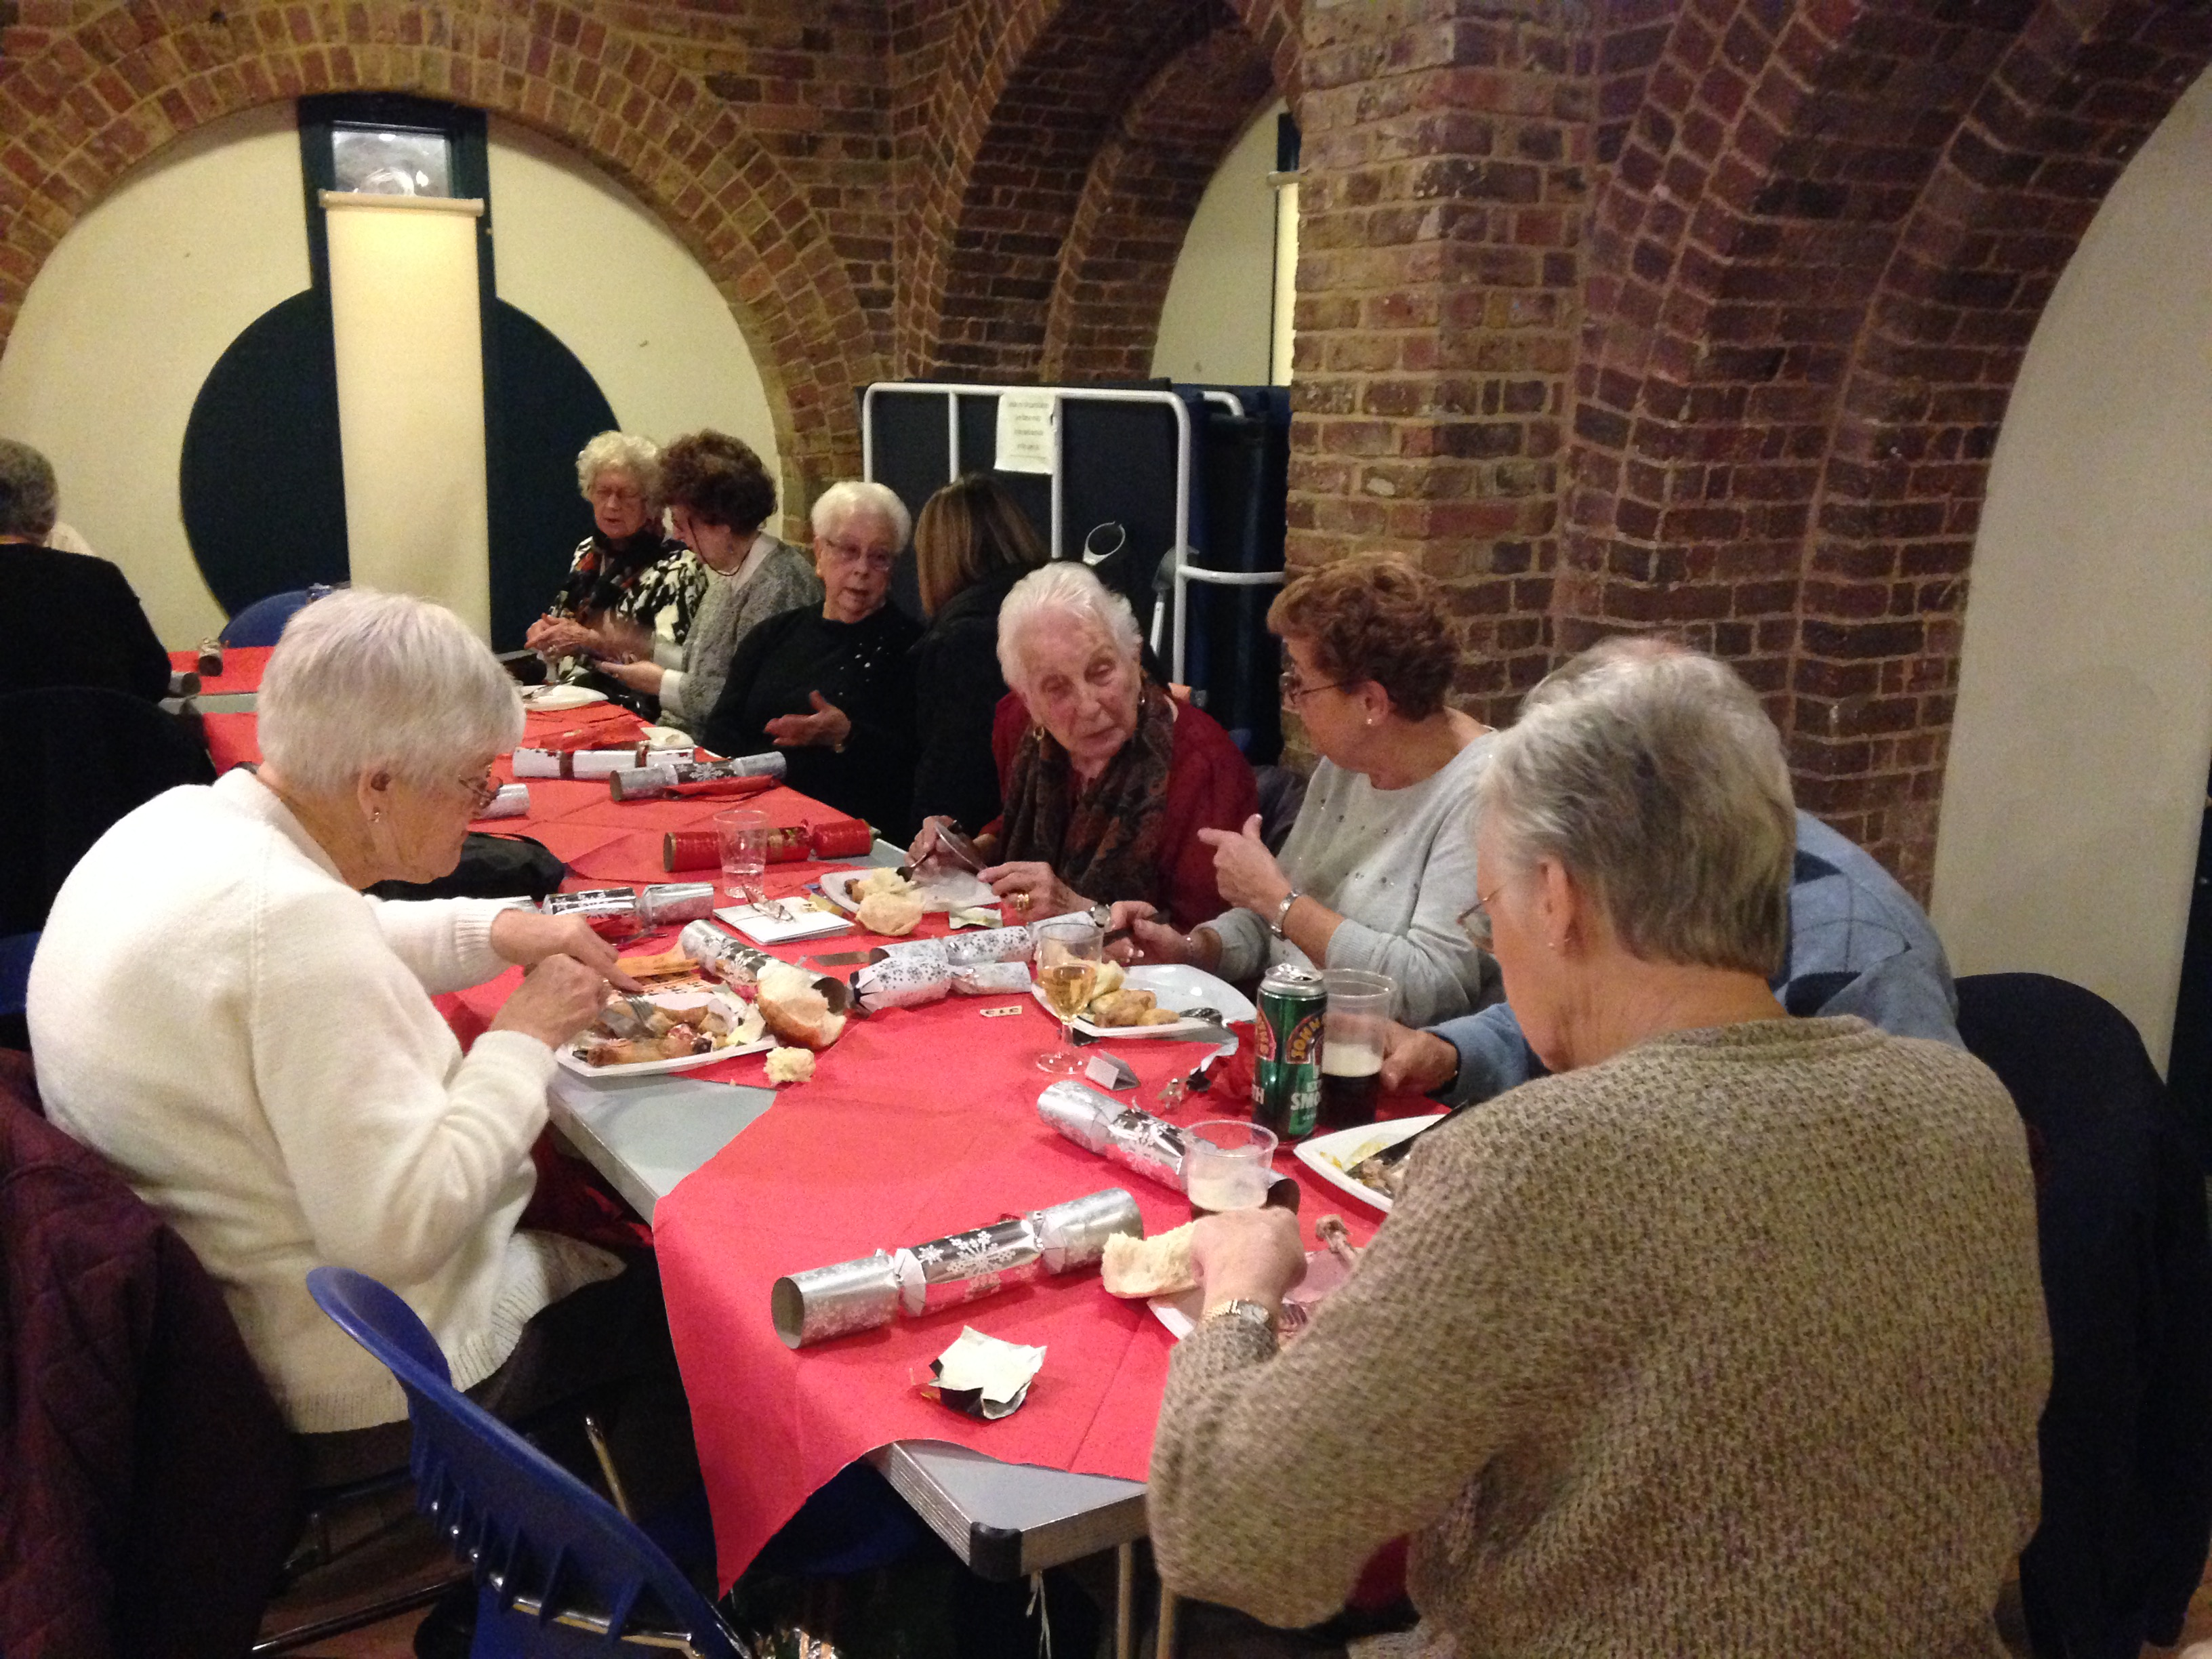 Walworth_Tenants_Xmas_Lunch2_3.12.14.jpg